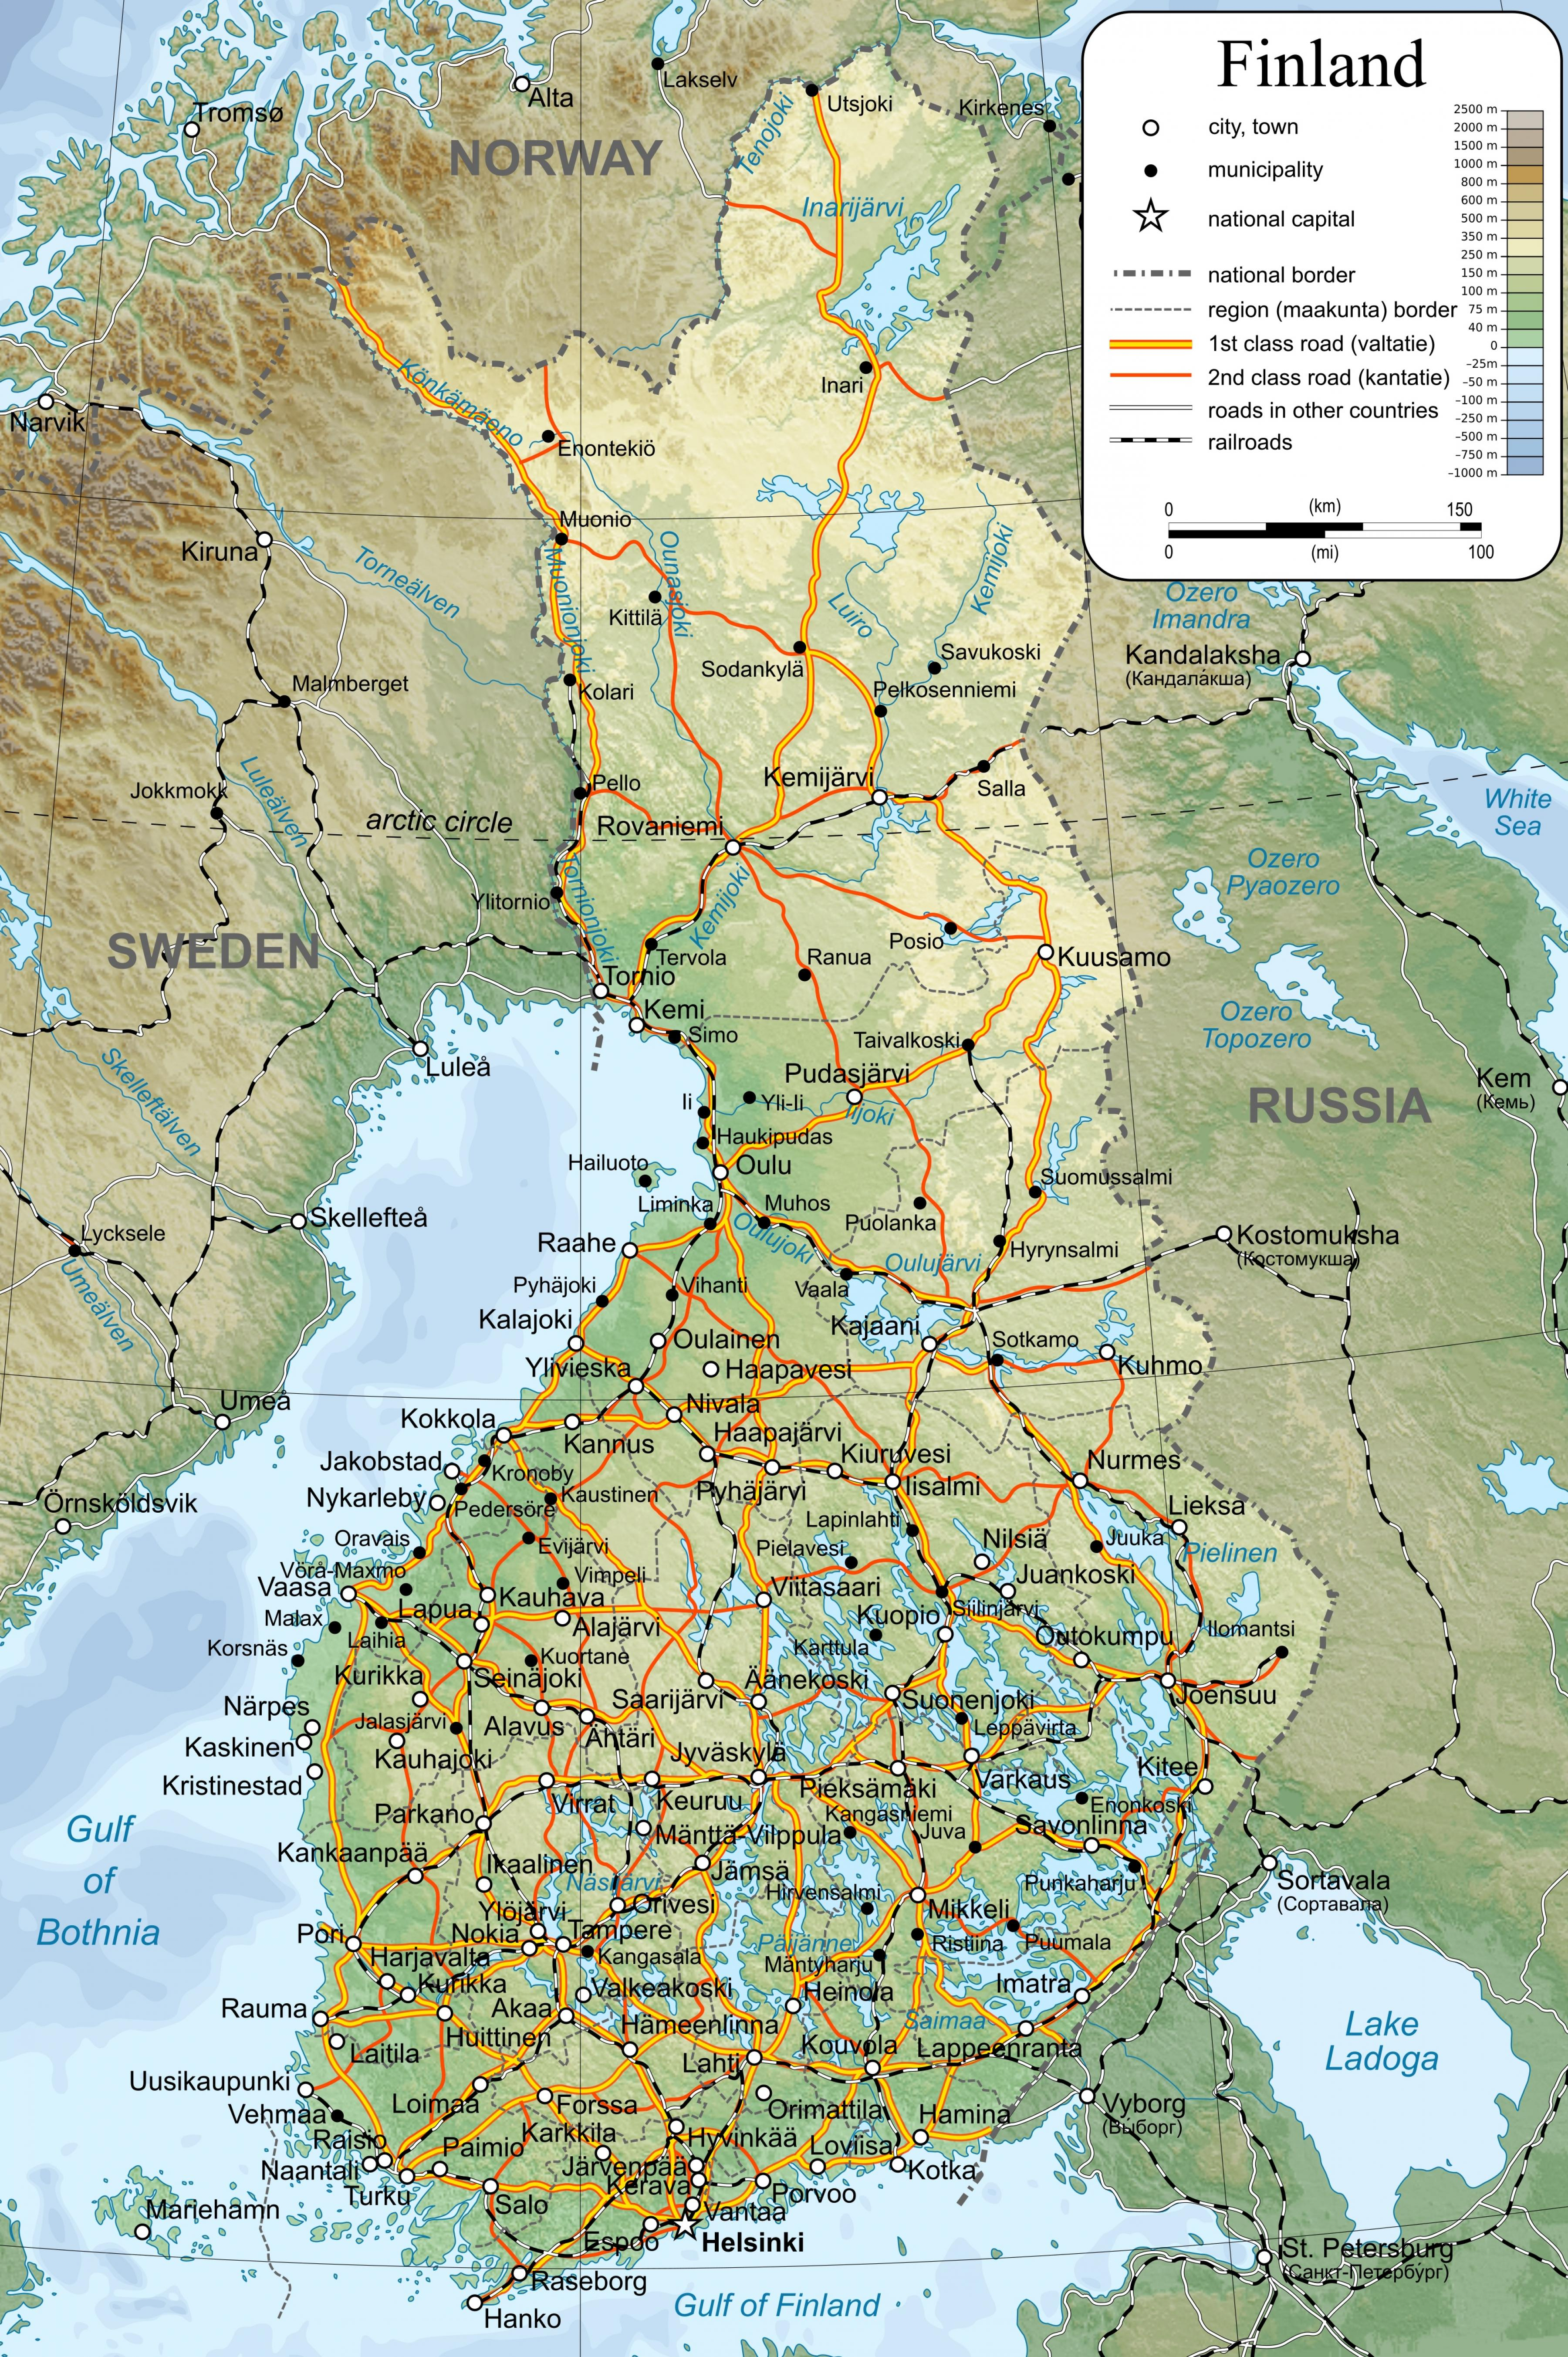 Finland map - Finland on world map (Northern Europe - Europe)